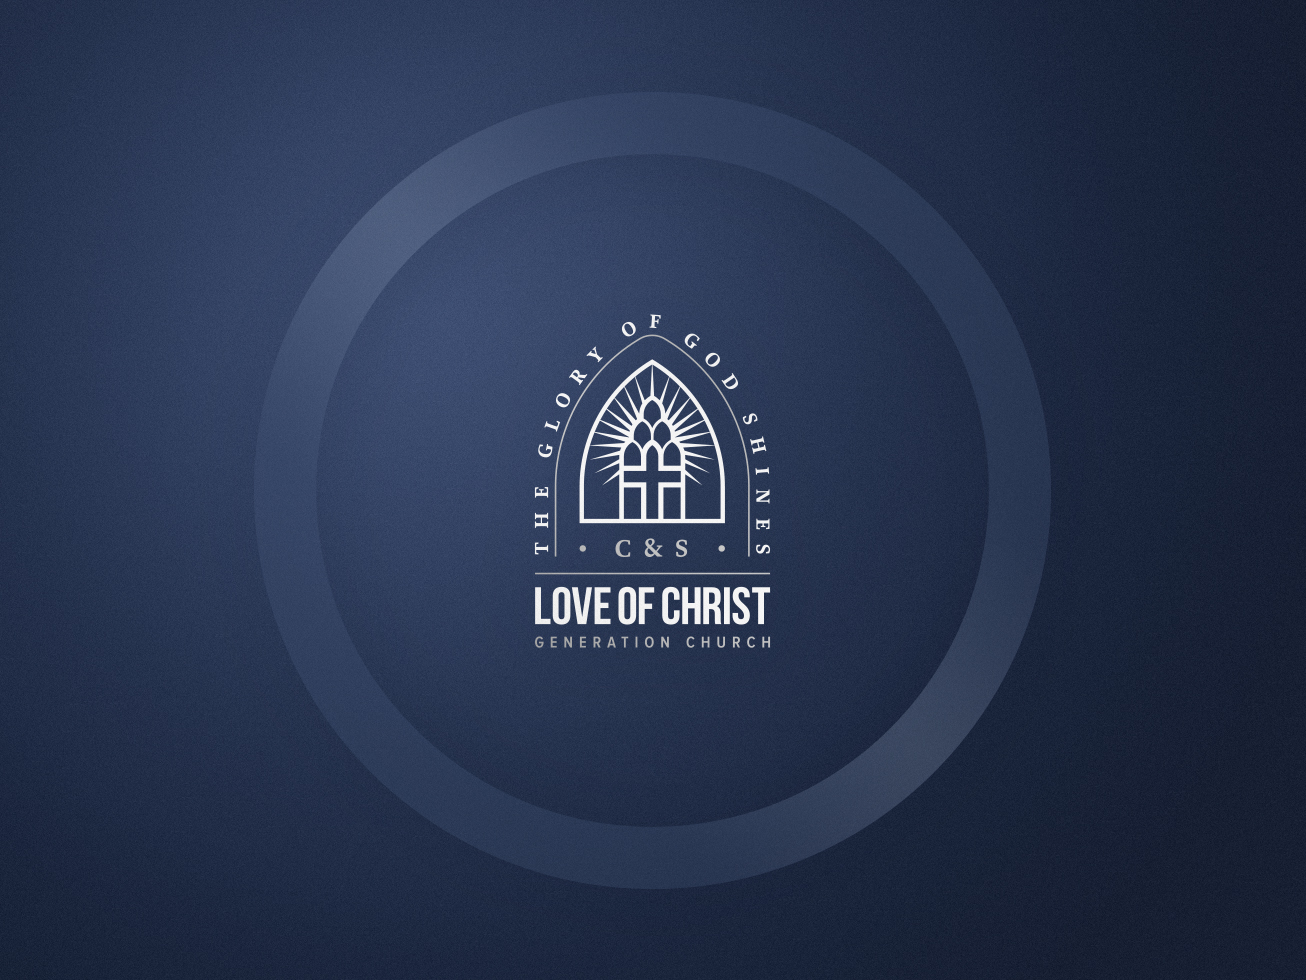 Love of christ church initial favourite brand logo version option 2